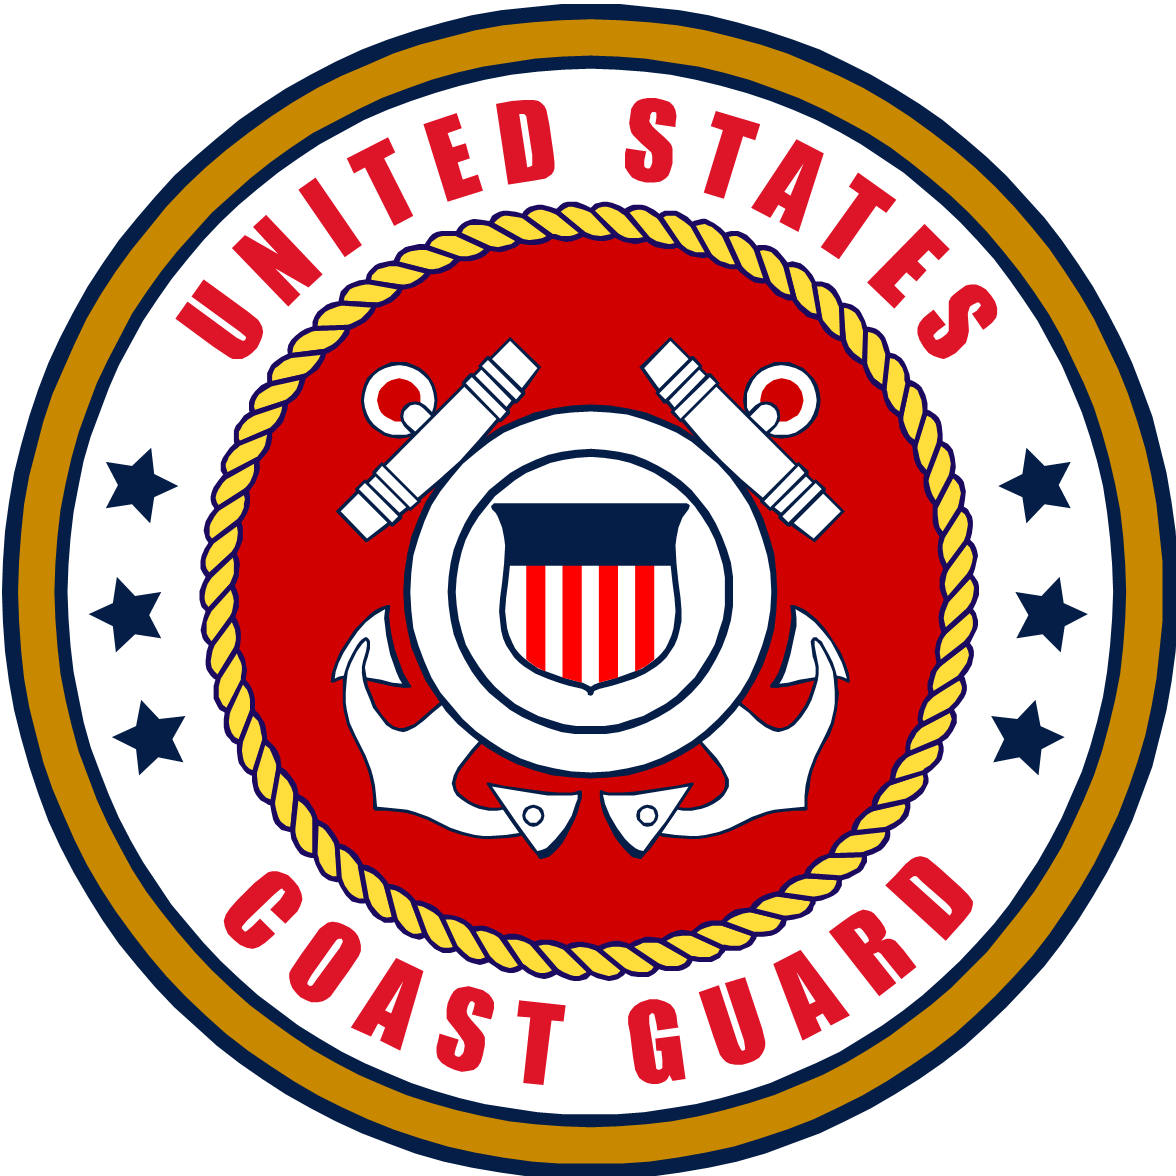 us-coast-guard-golf-cart-tire-supply-02.png